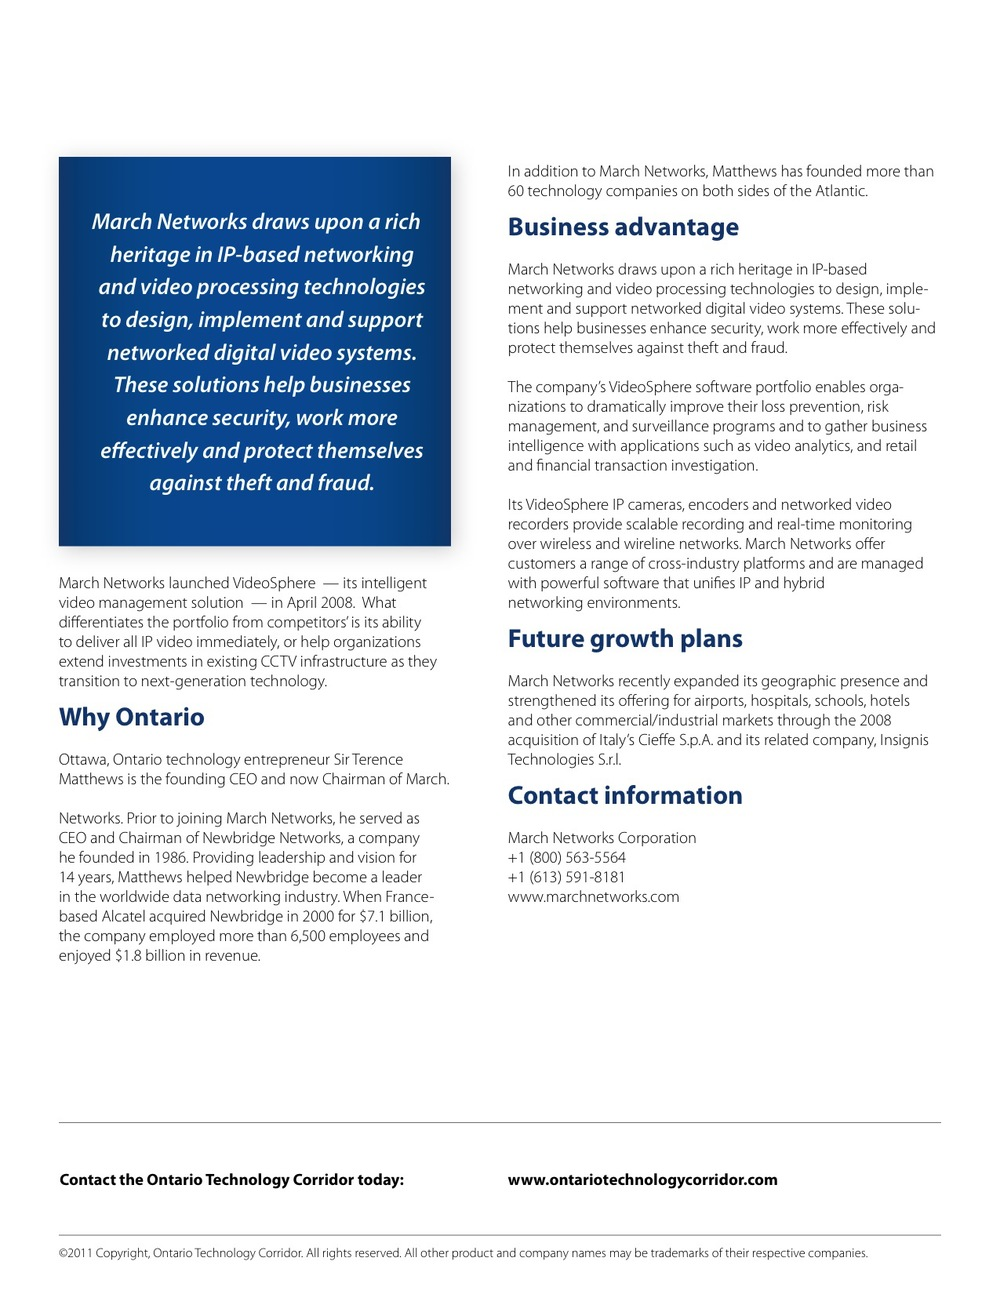 OTC-success-marchnetworks-Feb2011-view-page2.jpg